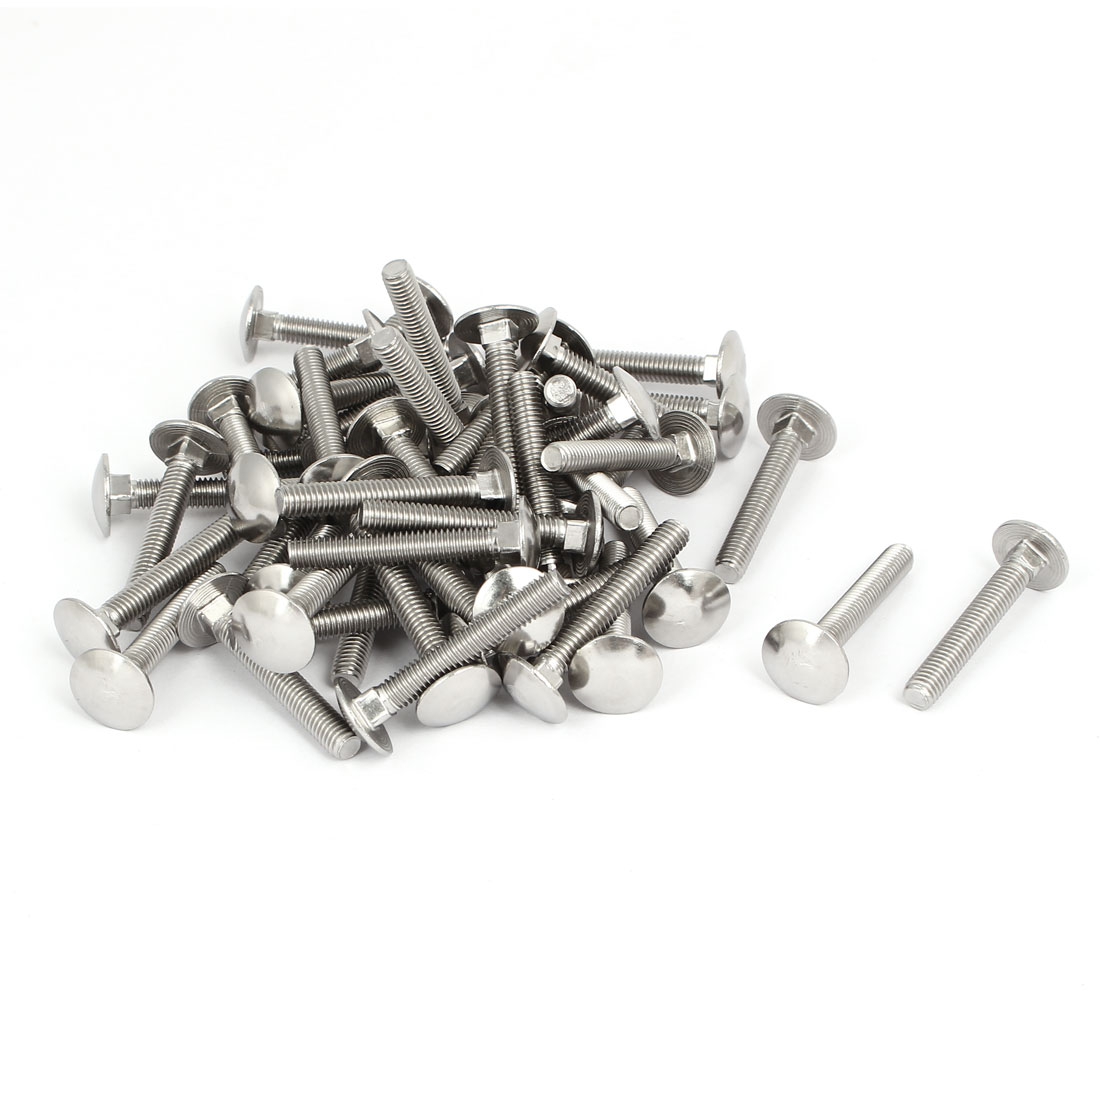 M6x40mm 304 Stainless Steel Fully Thread Square Neck Carriage Bolts DIN603 50pcs